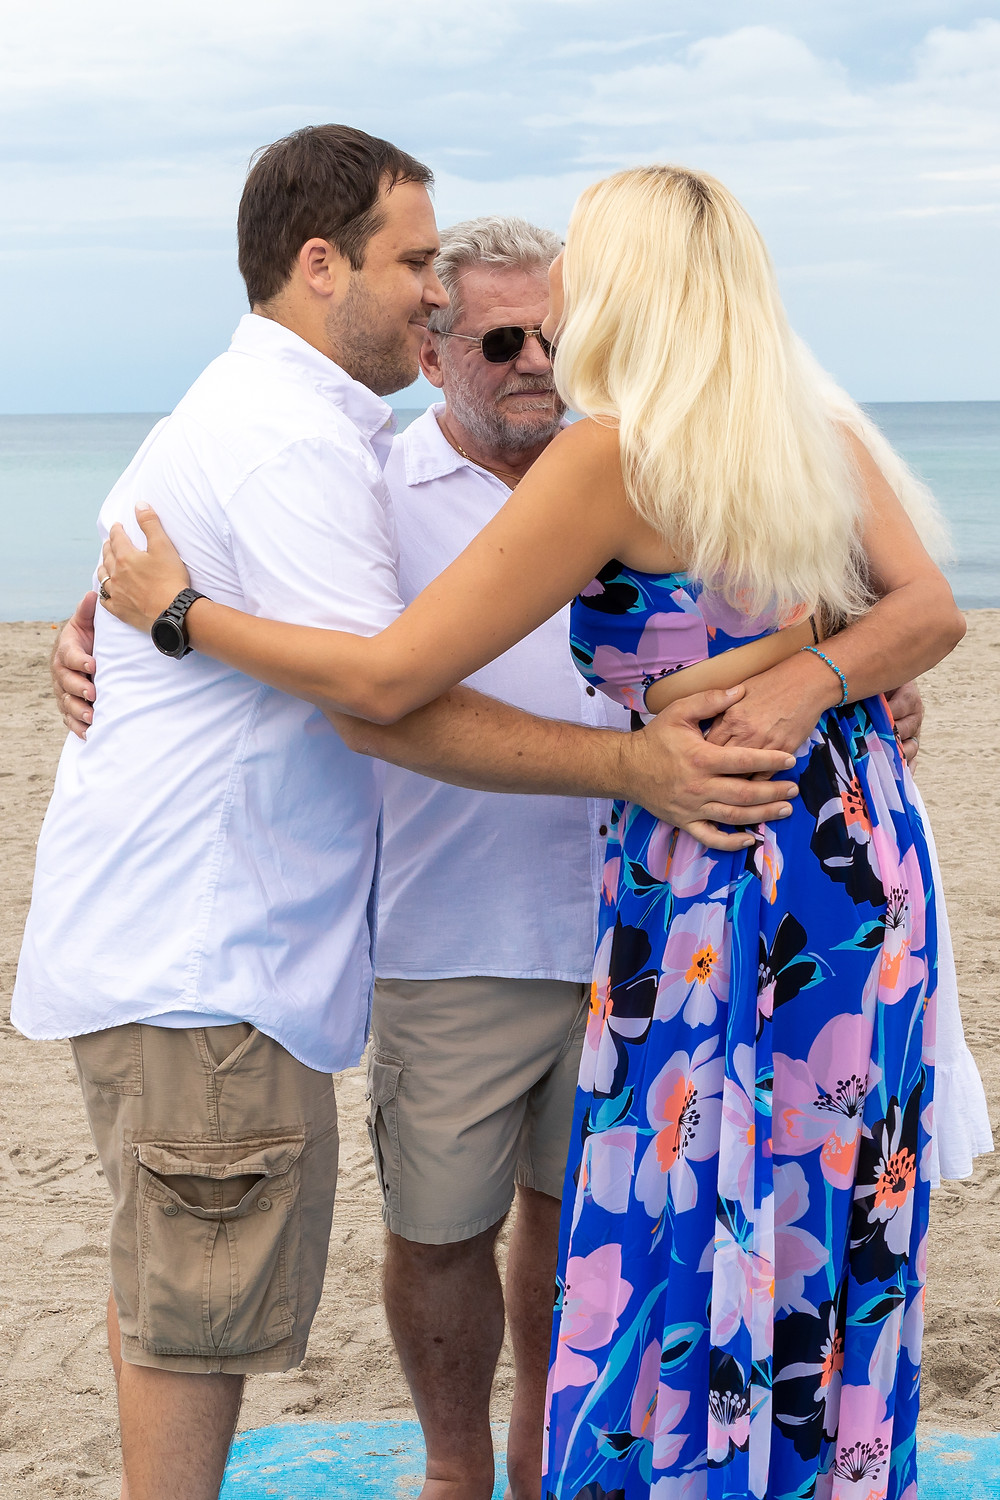 Cincinnati wedding photographer captures image of husband and wife hugging with a friend on the beach.